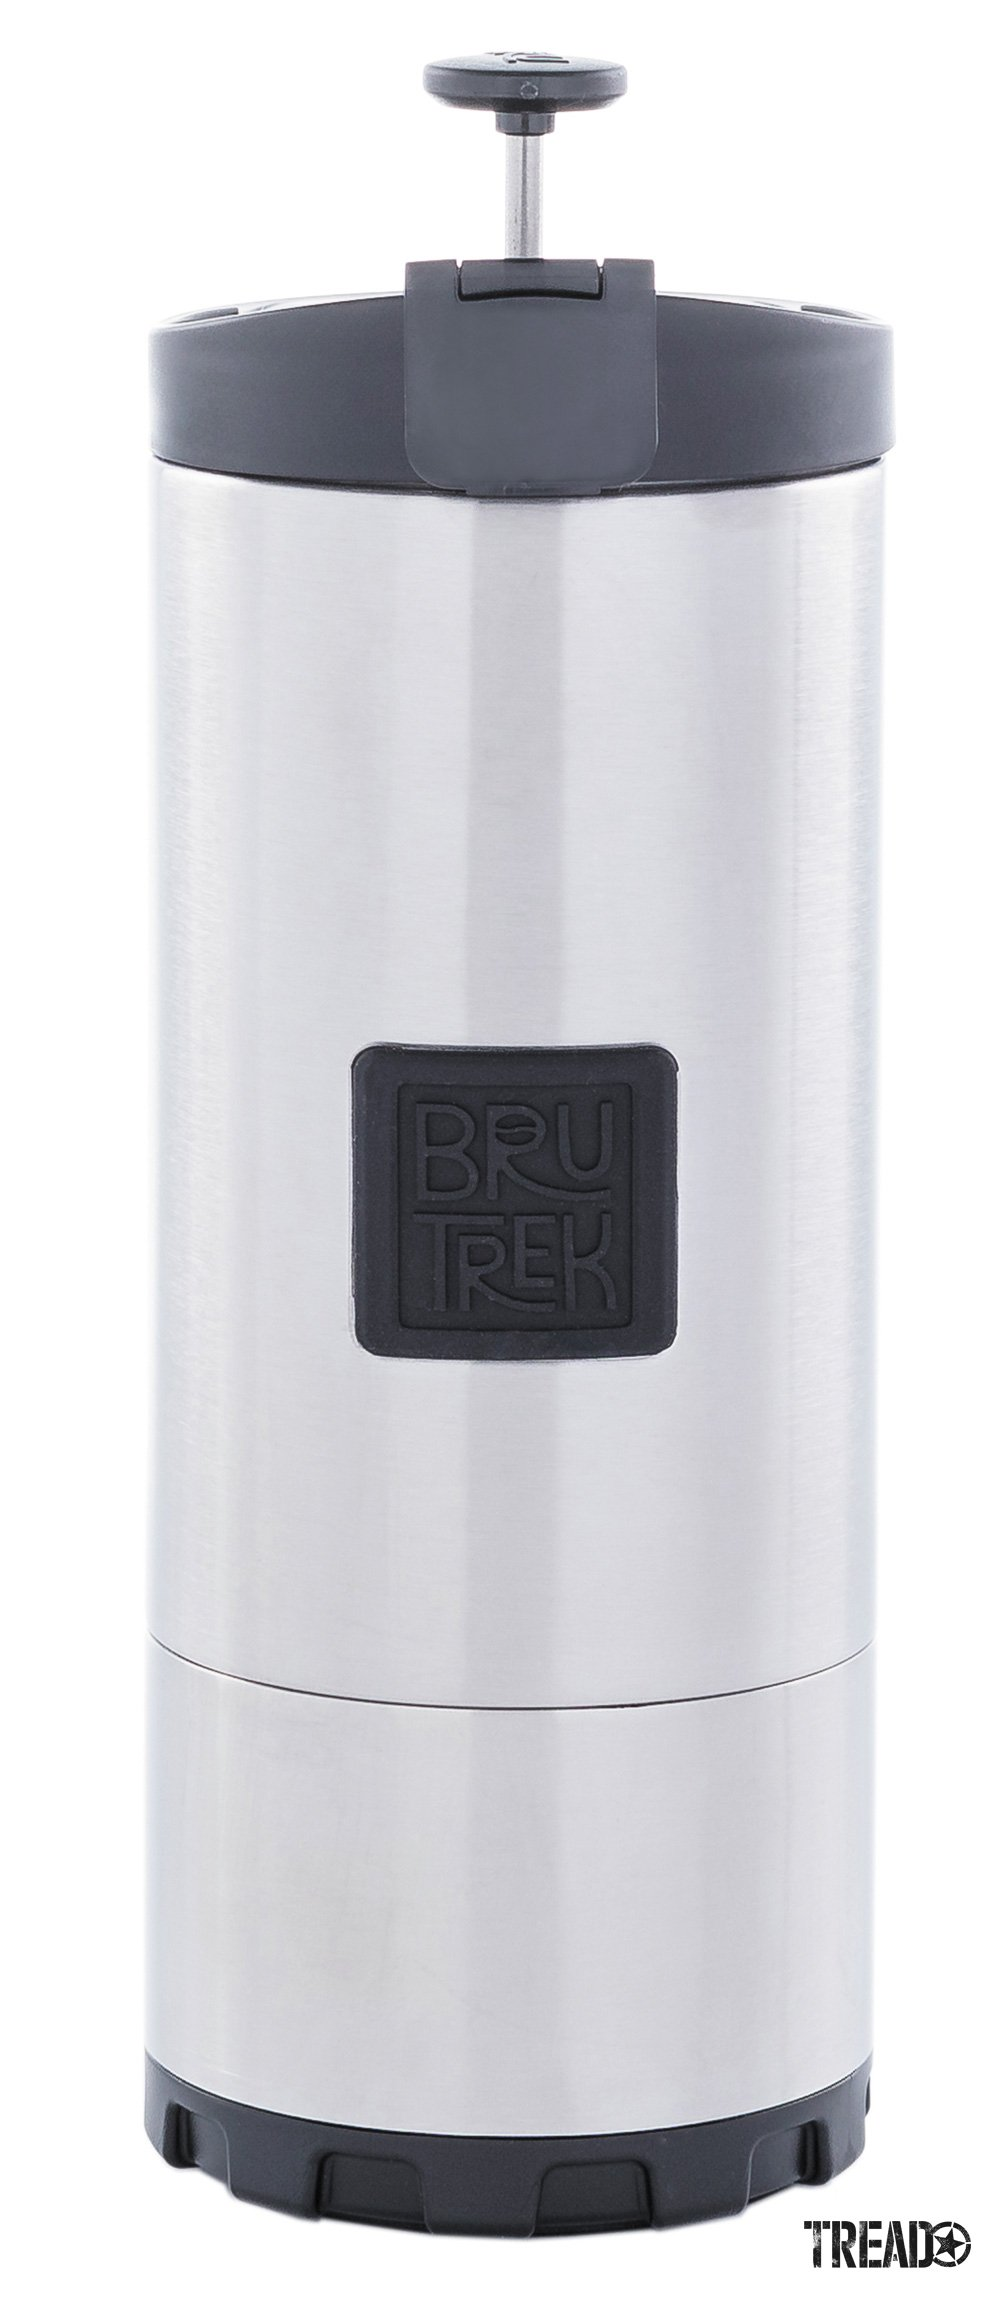 Bru Trek Travel French Press for coffee called the OVRLNDR in silver color